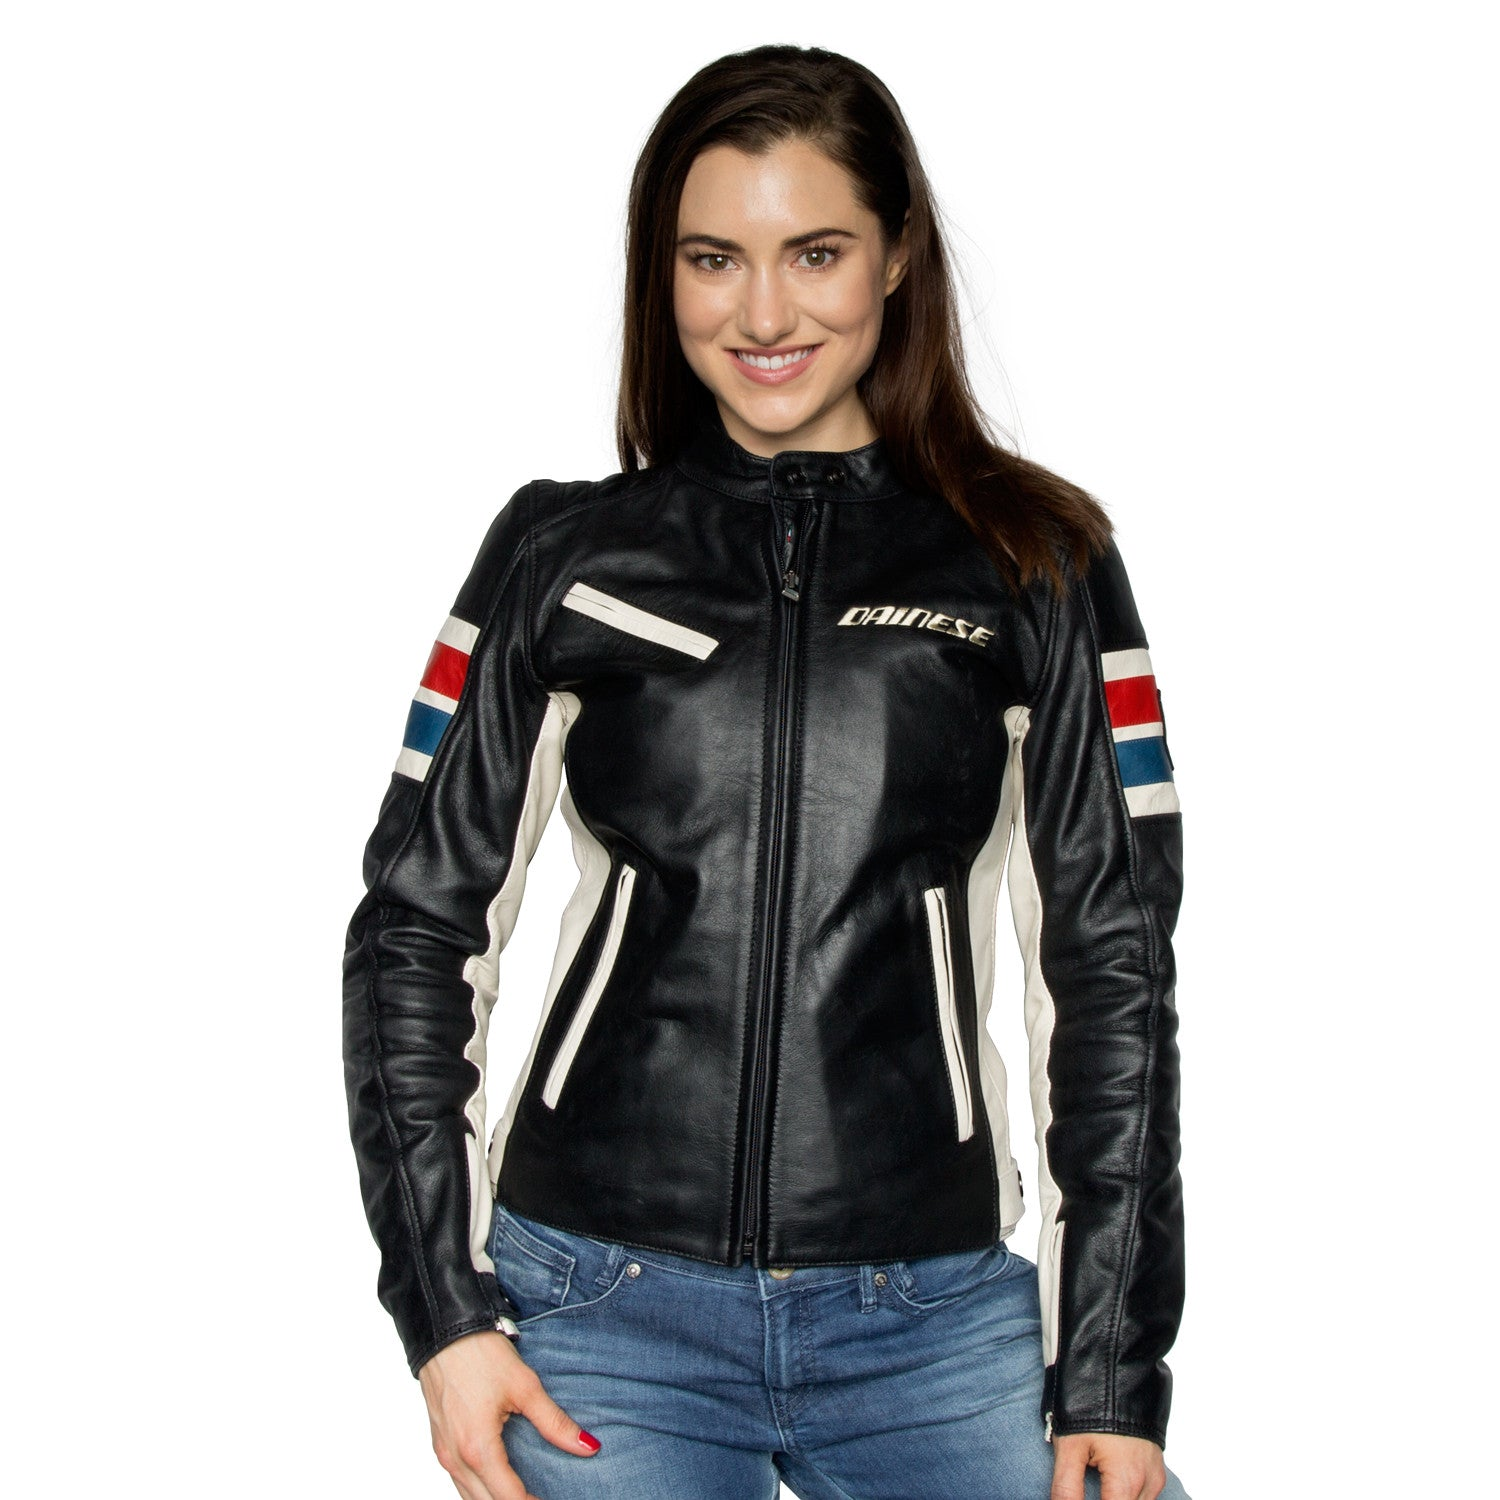 Alpinestars Motorcycle Jacket >> DAINESE LOLA Ladies Jacket - Beach Moto